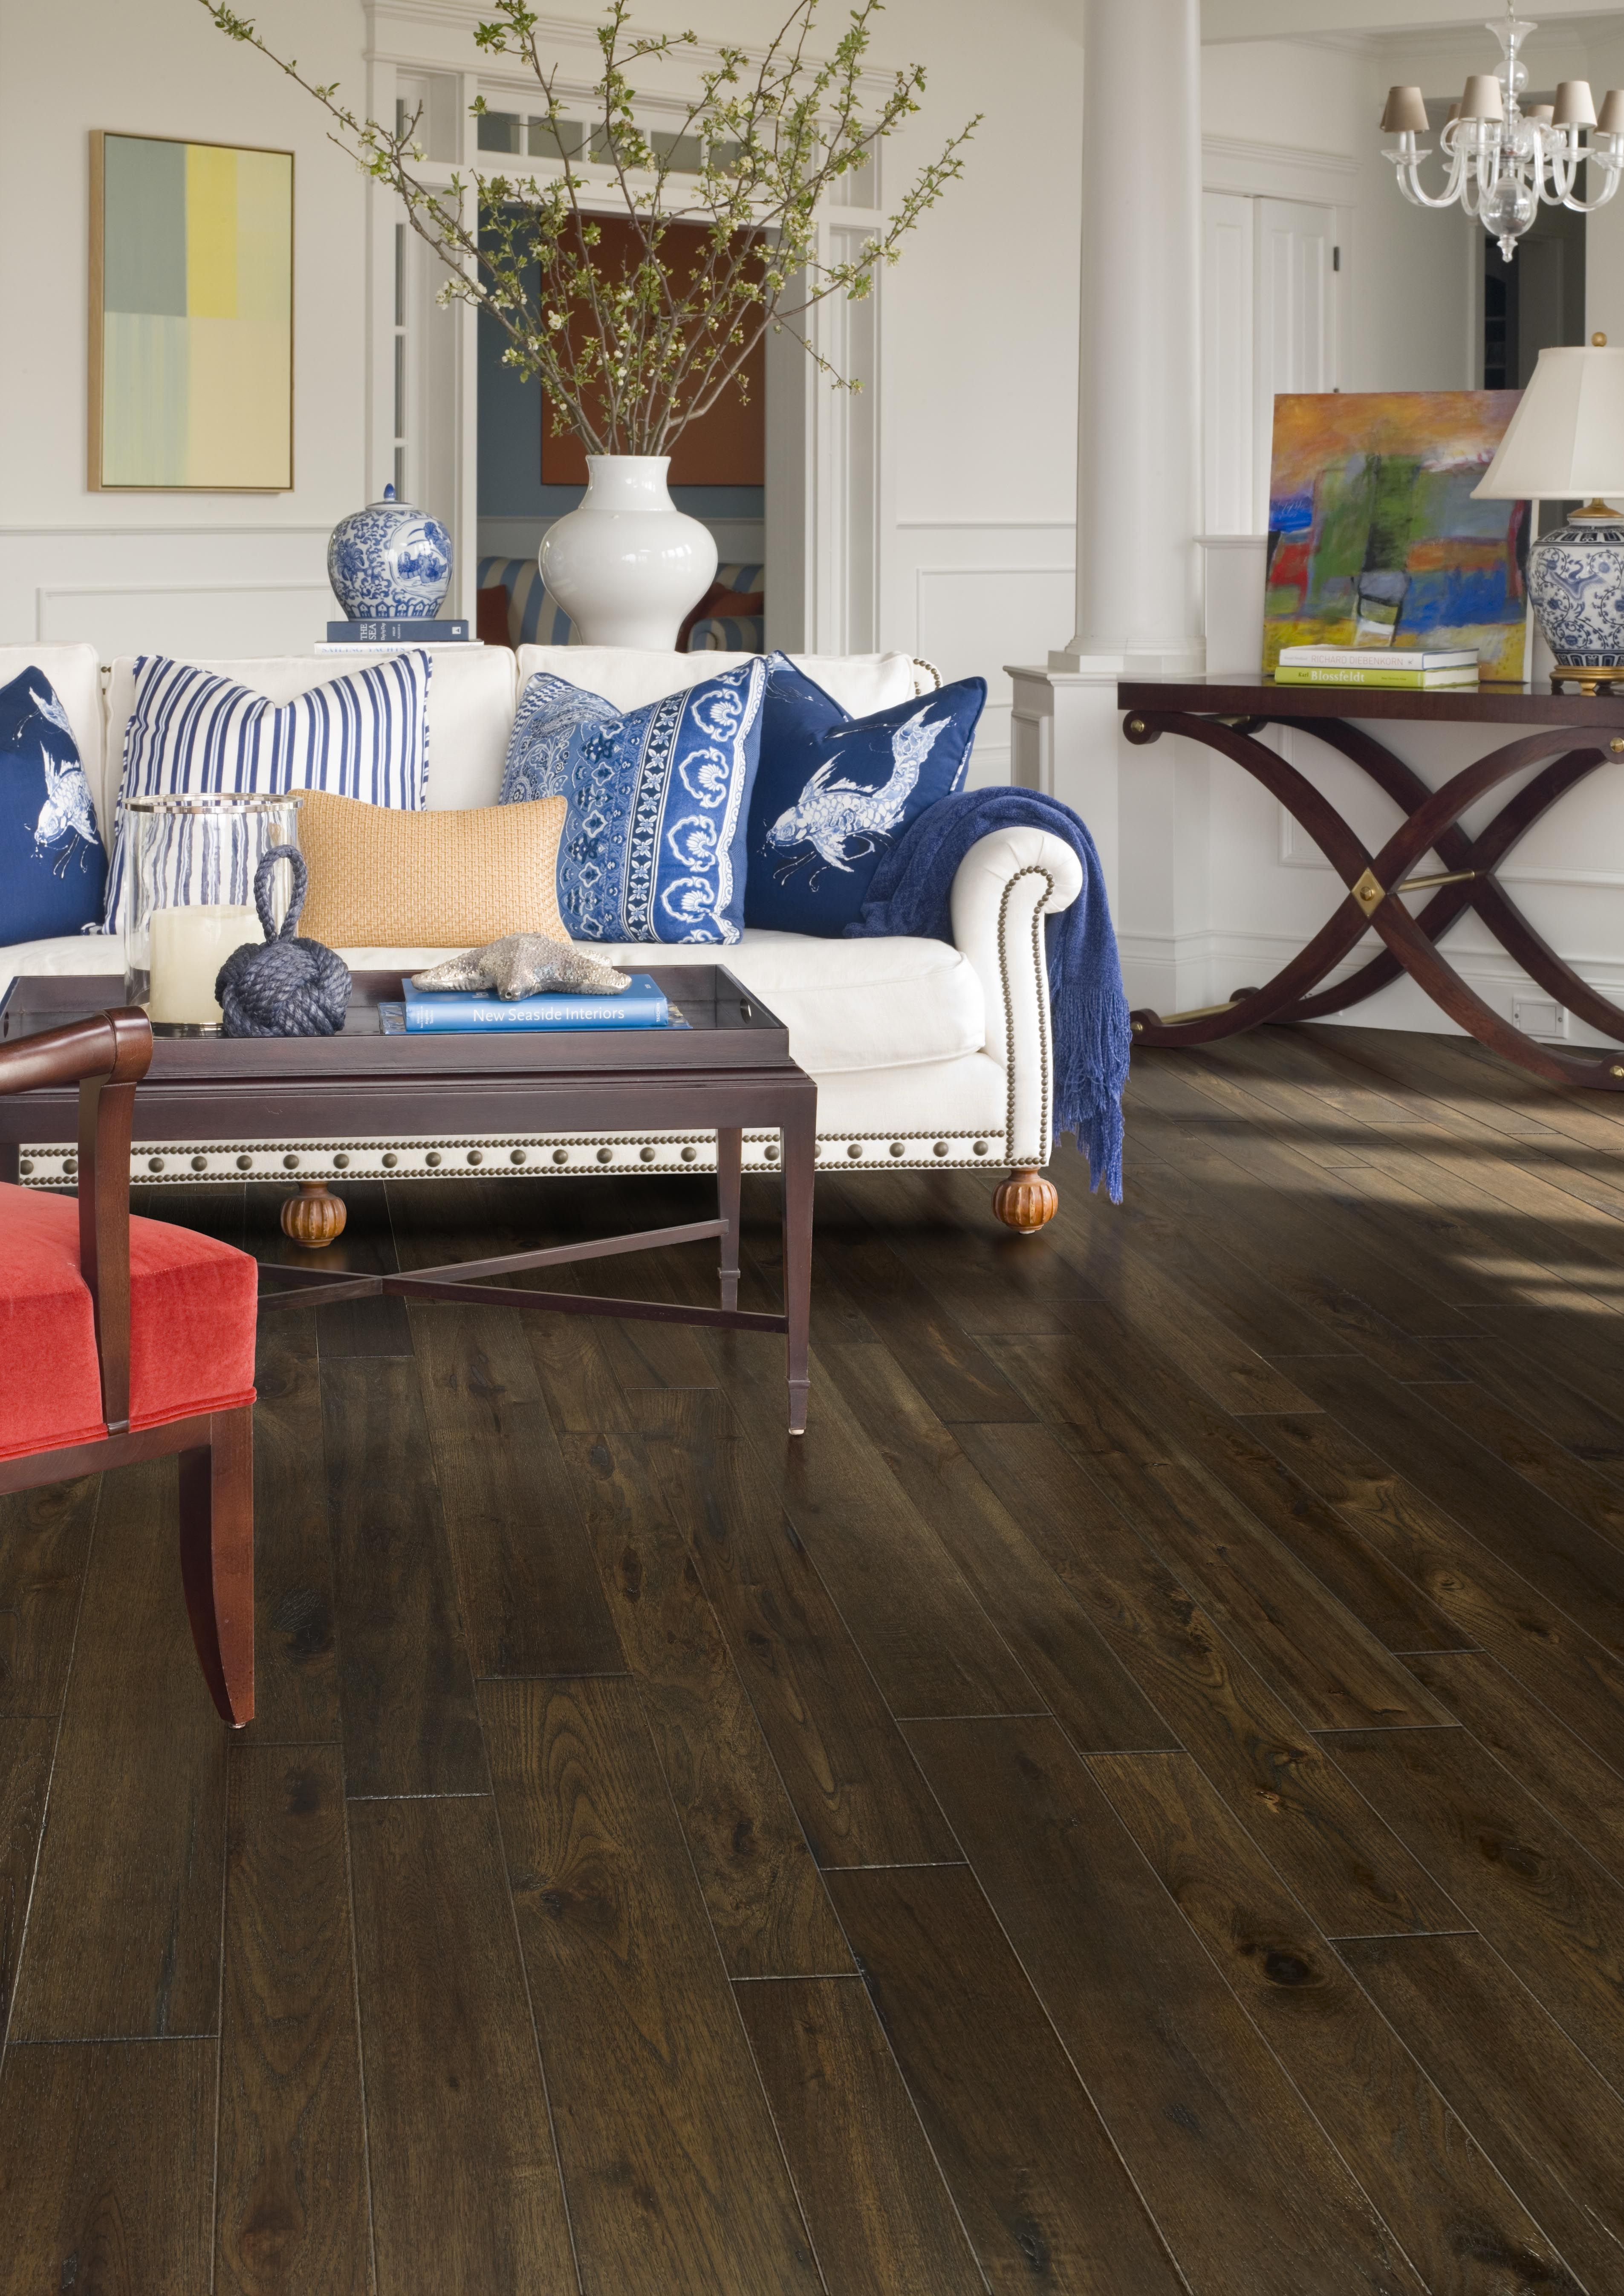 hickory floor by dogshickory and inspirations kitchen flooring pros after artistic theflooringlady for picture hardwood hickoryood design cons best of full size refinishing wood in exceptional floors reviews